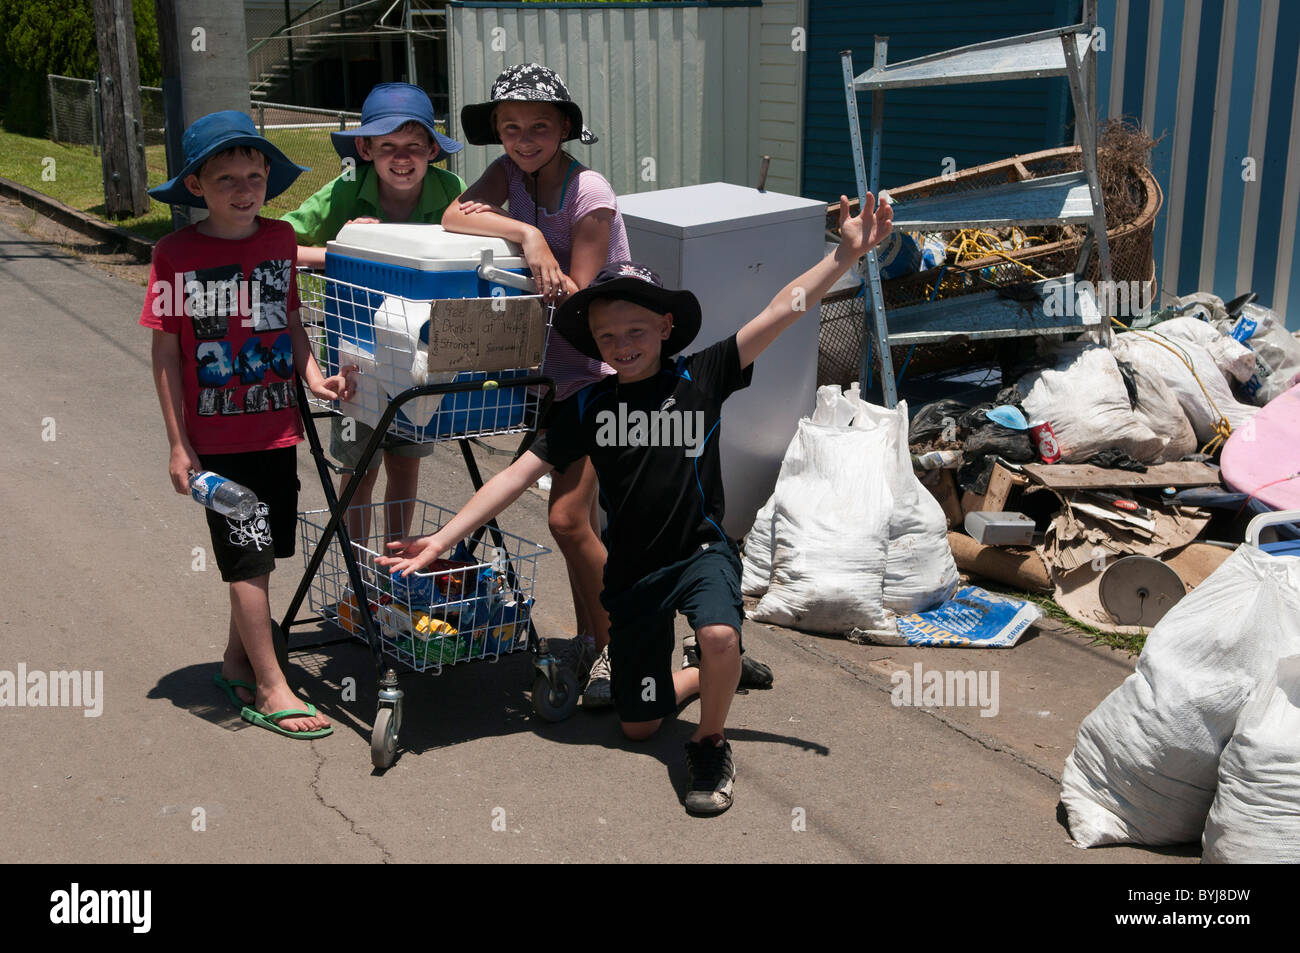 Children with food and drink for volunteer relief workers during the 2011 flood, Brisbane, Queensland, Australia - Stock Image